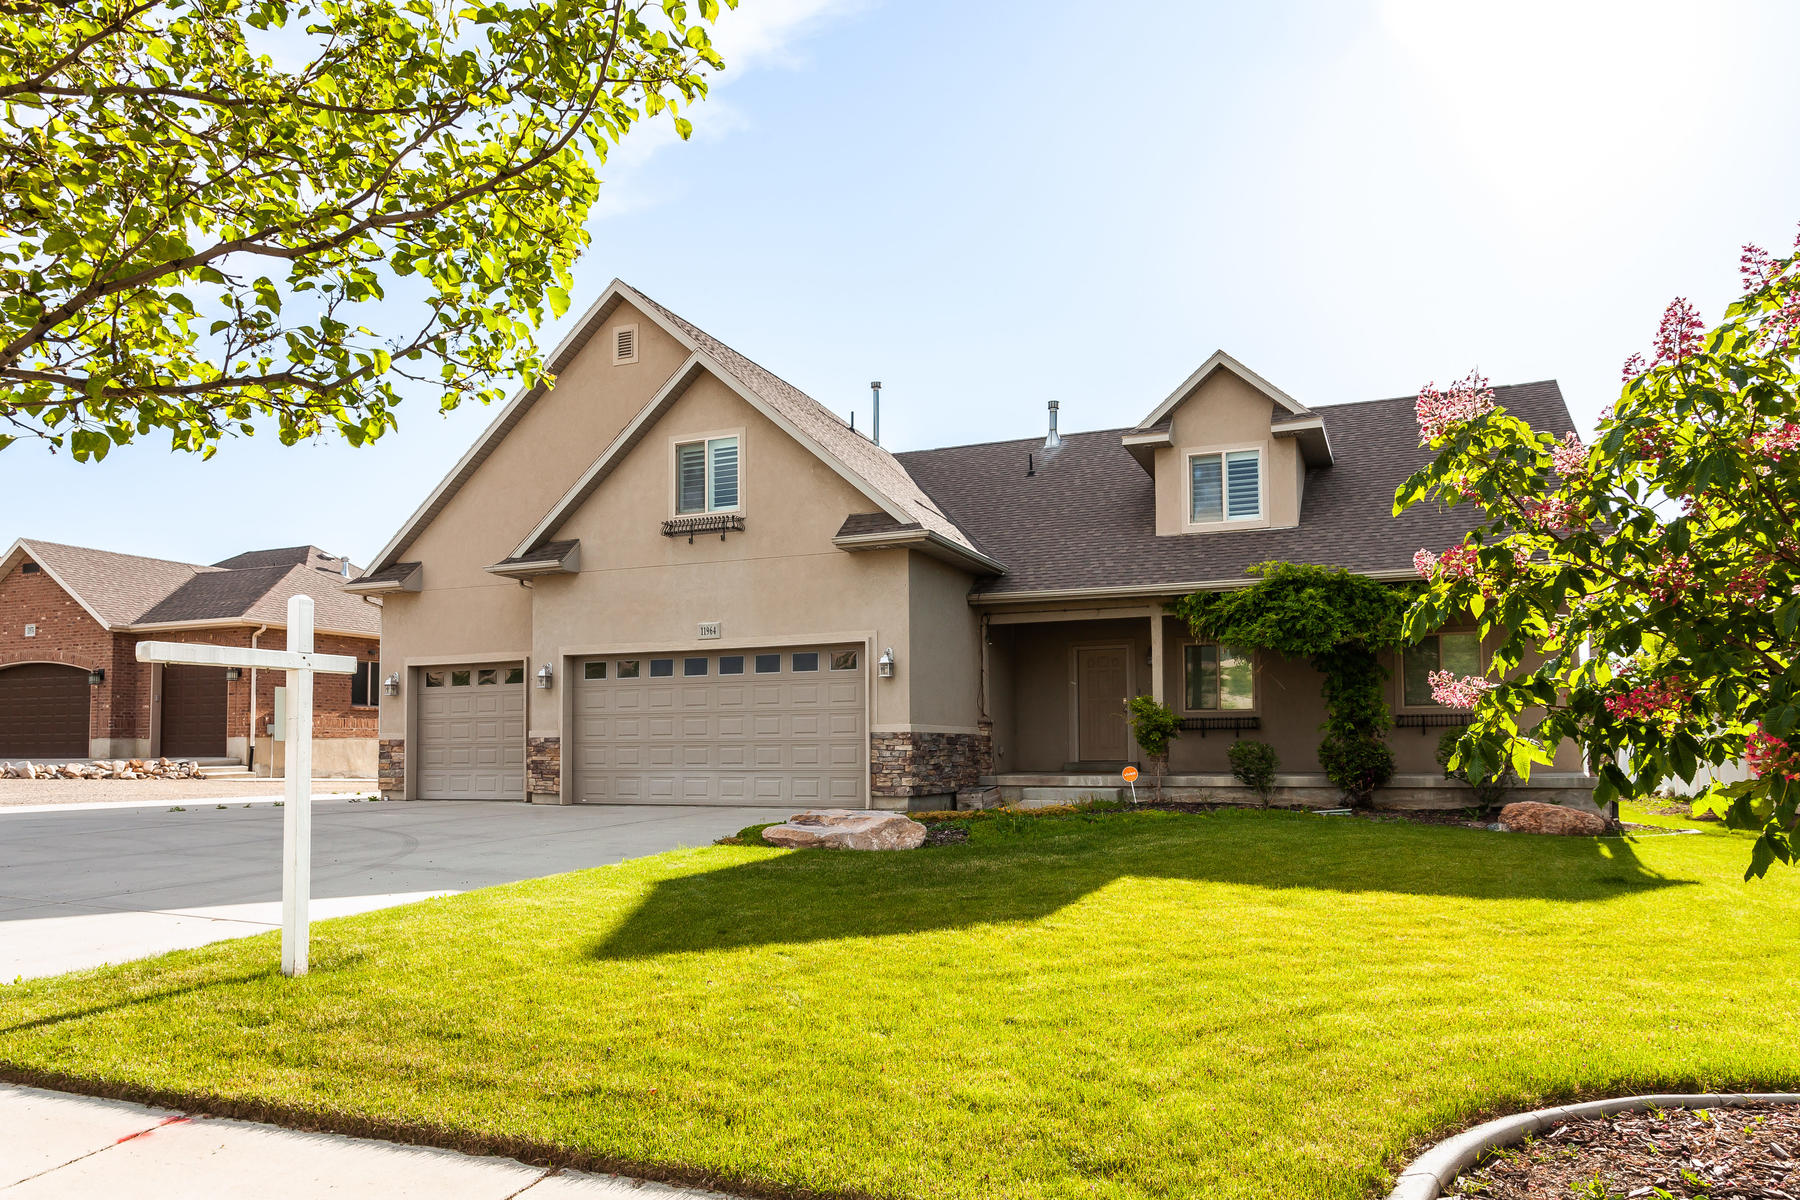 Single Family Homes for Active at Turn Key Draper Two-Story 11964 South 700 West Draper, Utah 84020 United States